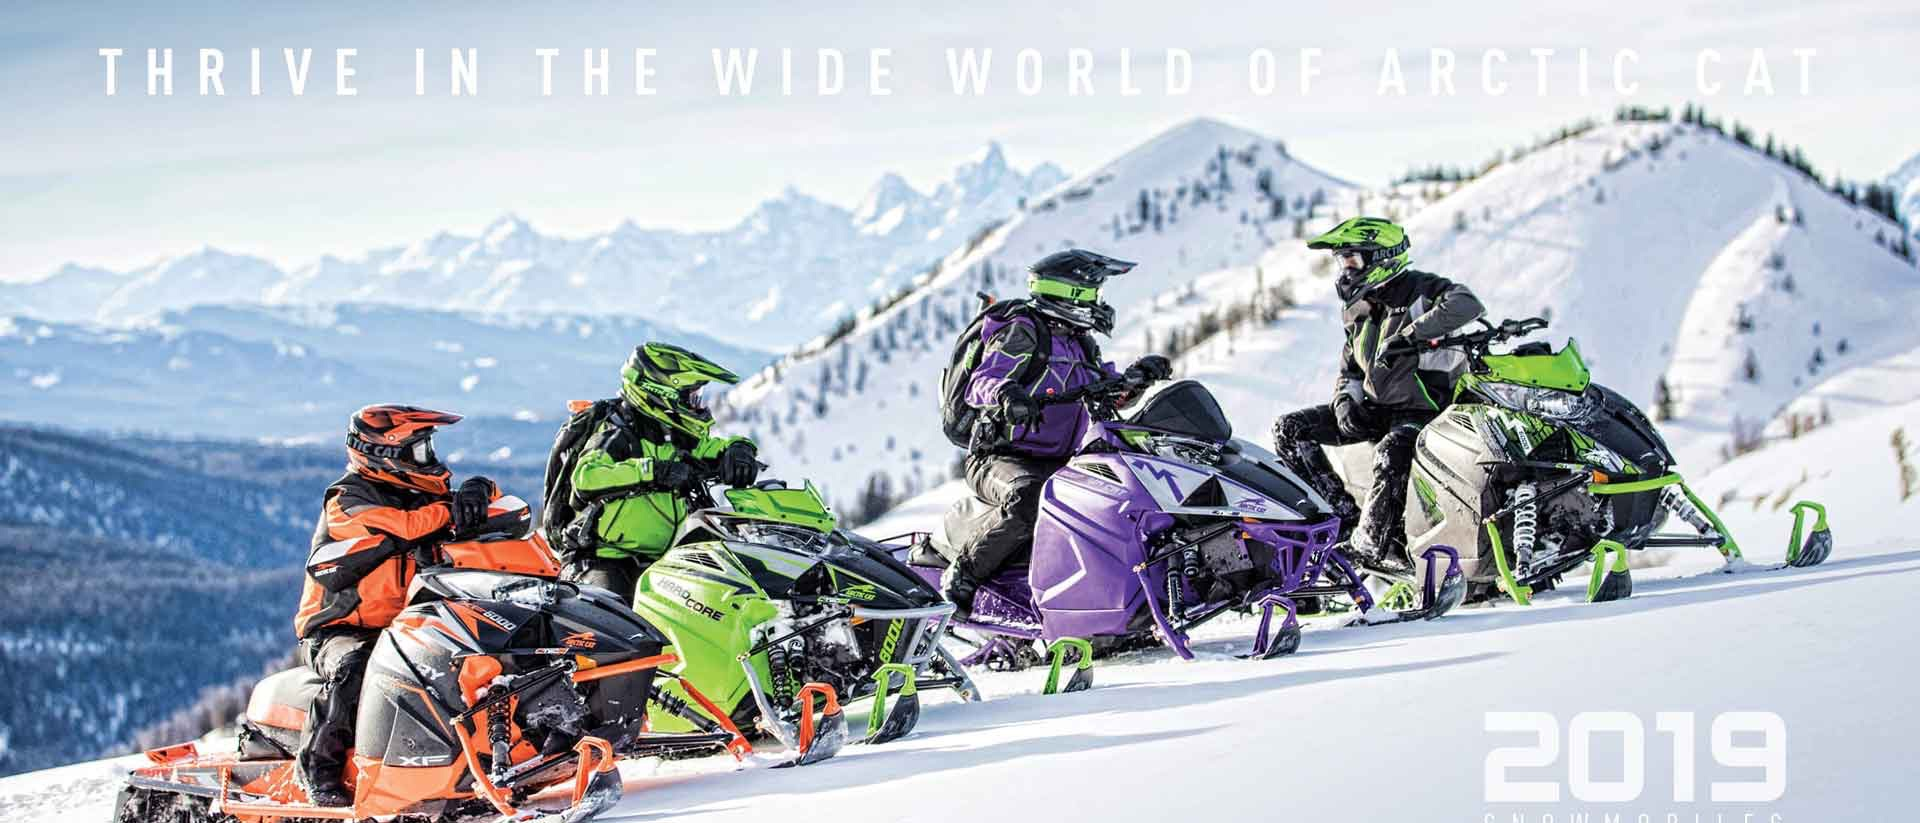 Shop 2019 Arctic Cat Snowmobiles